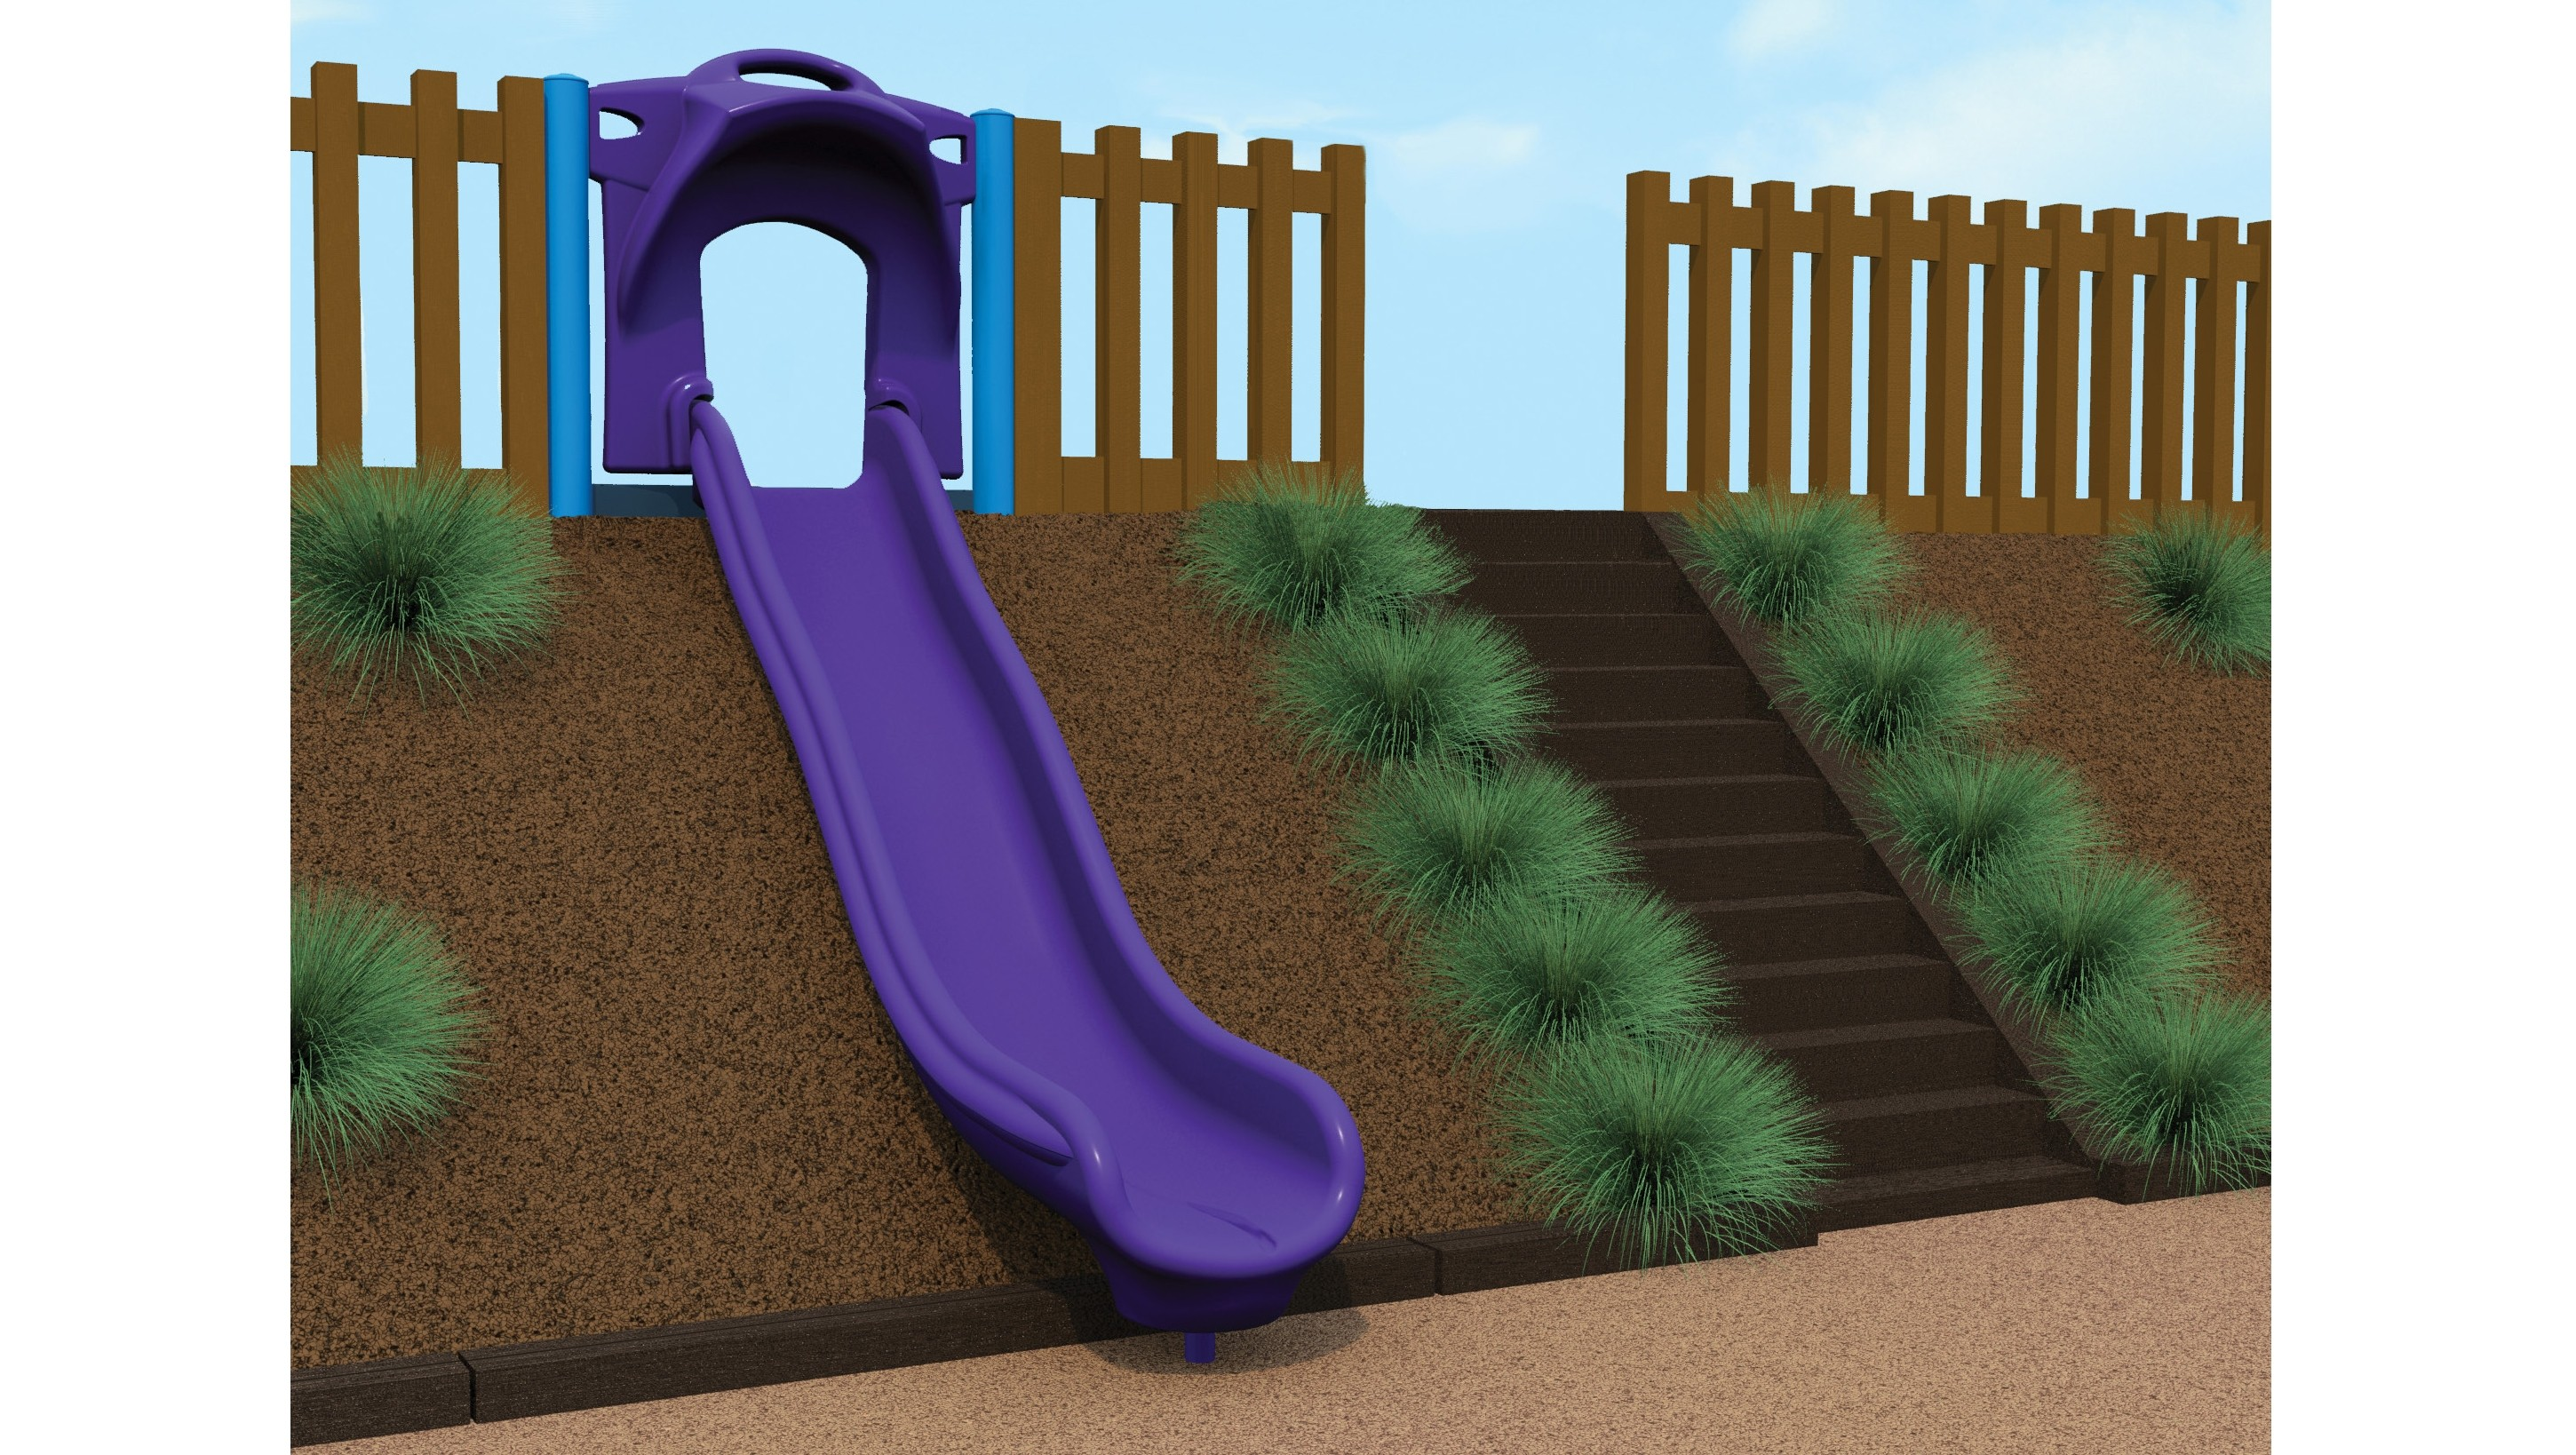 Hillslide Zip Slide - Wave Zip Slide